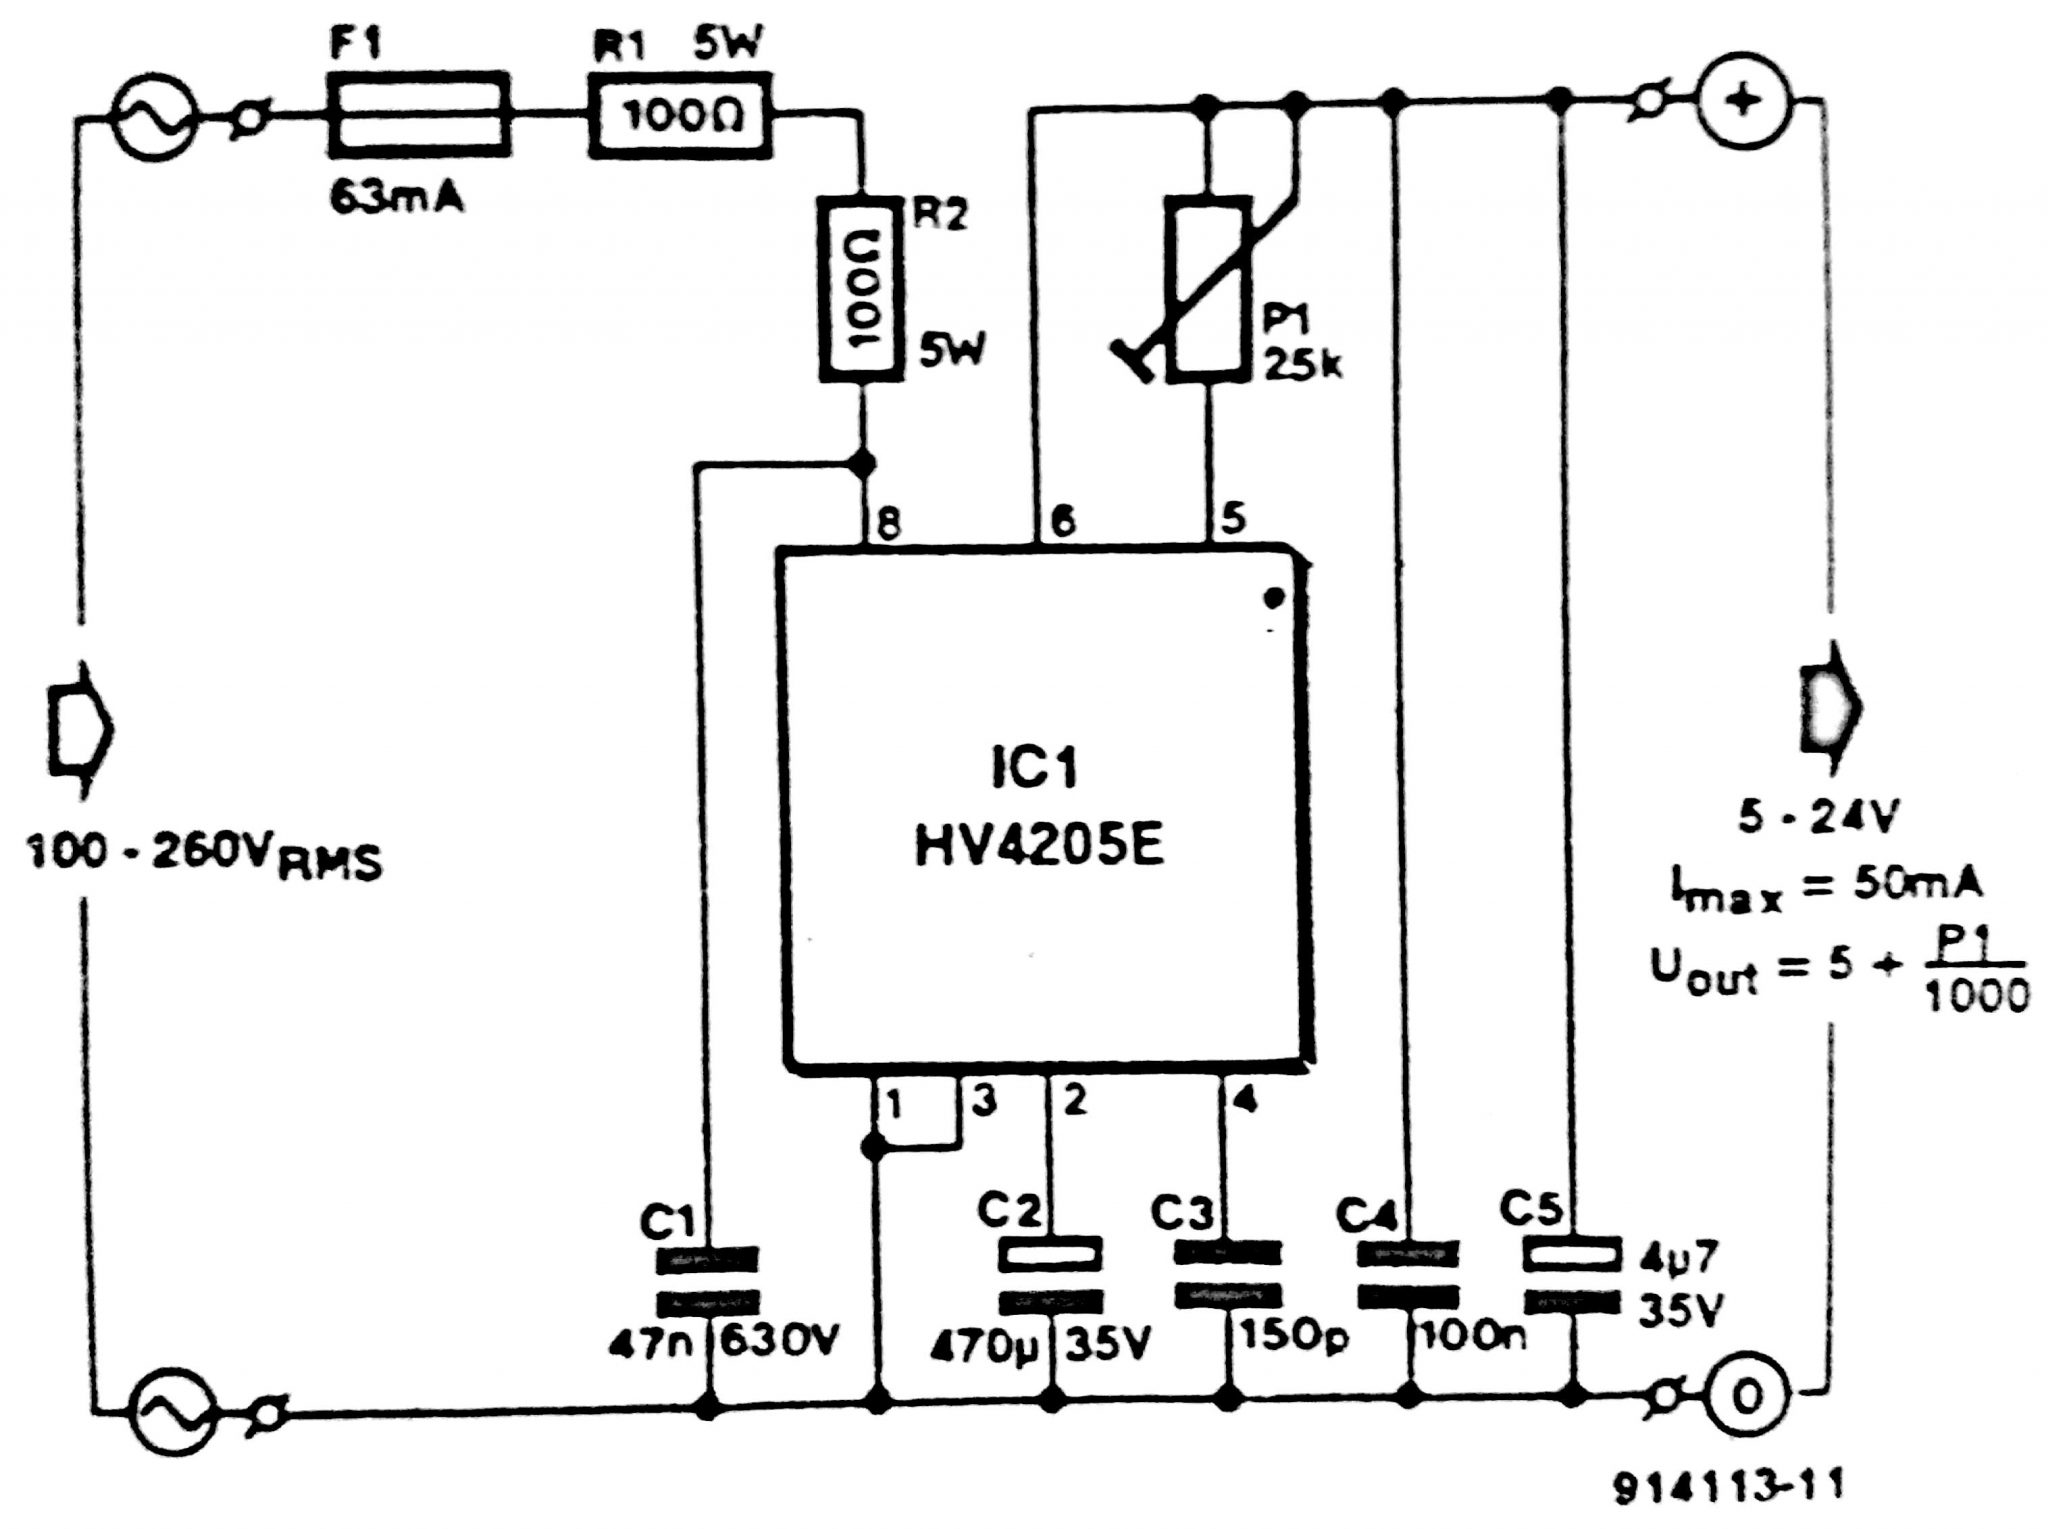 Ac Wiring Circuit Manual Guide Diagram Window Low Power Inverter And Connection